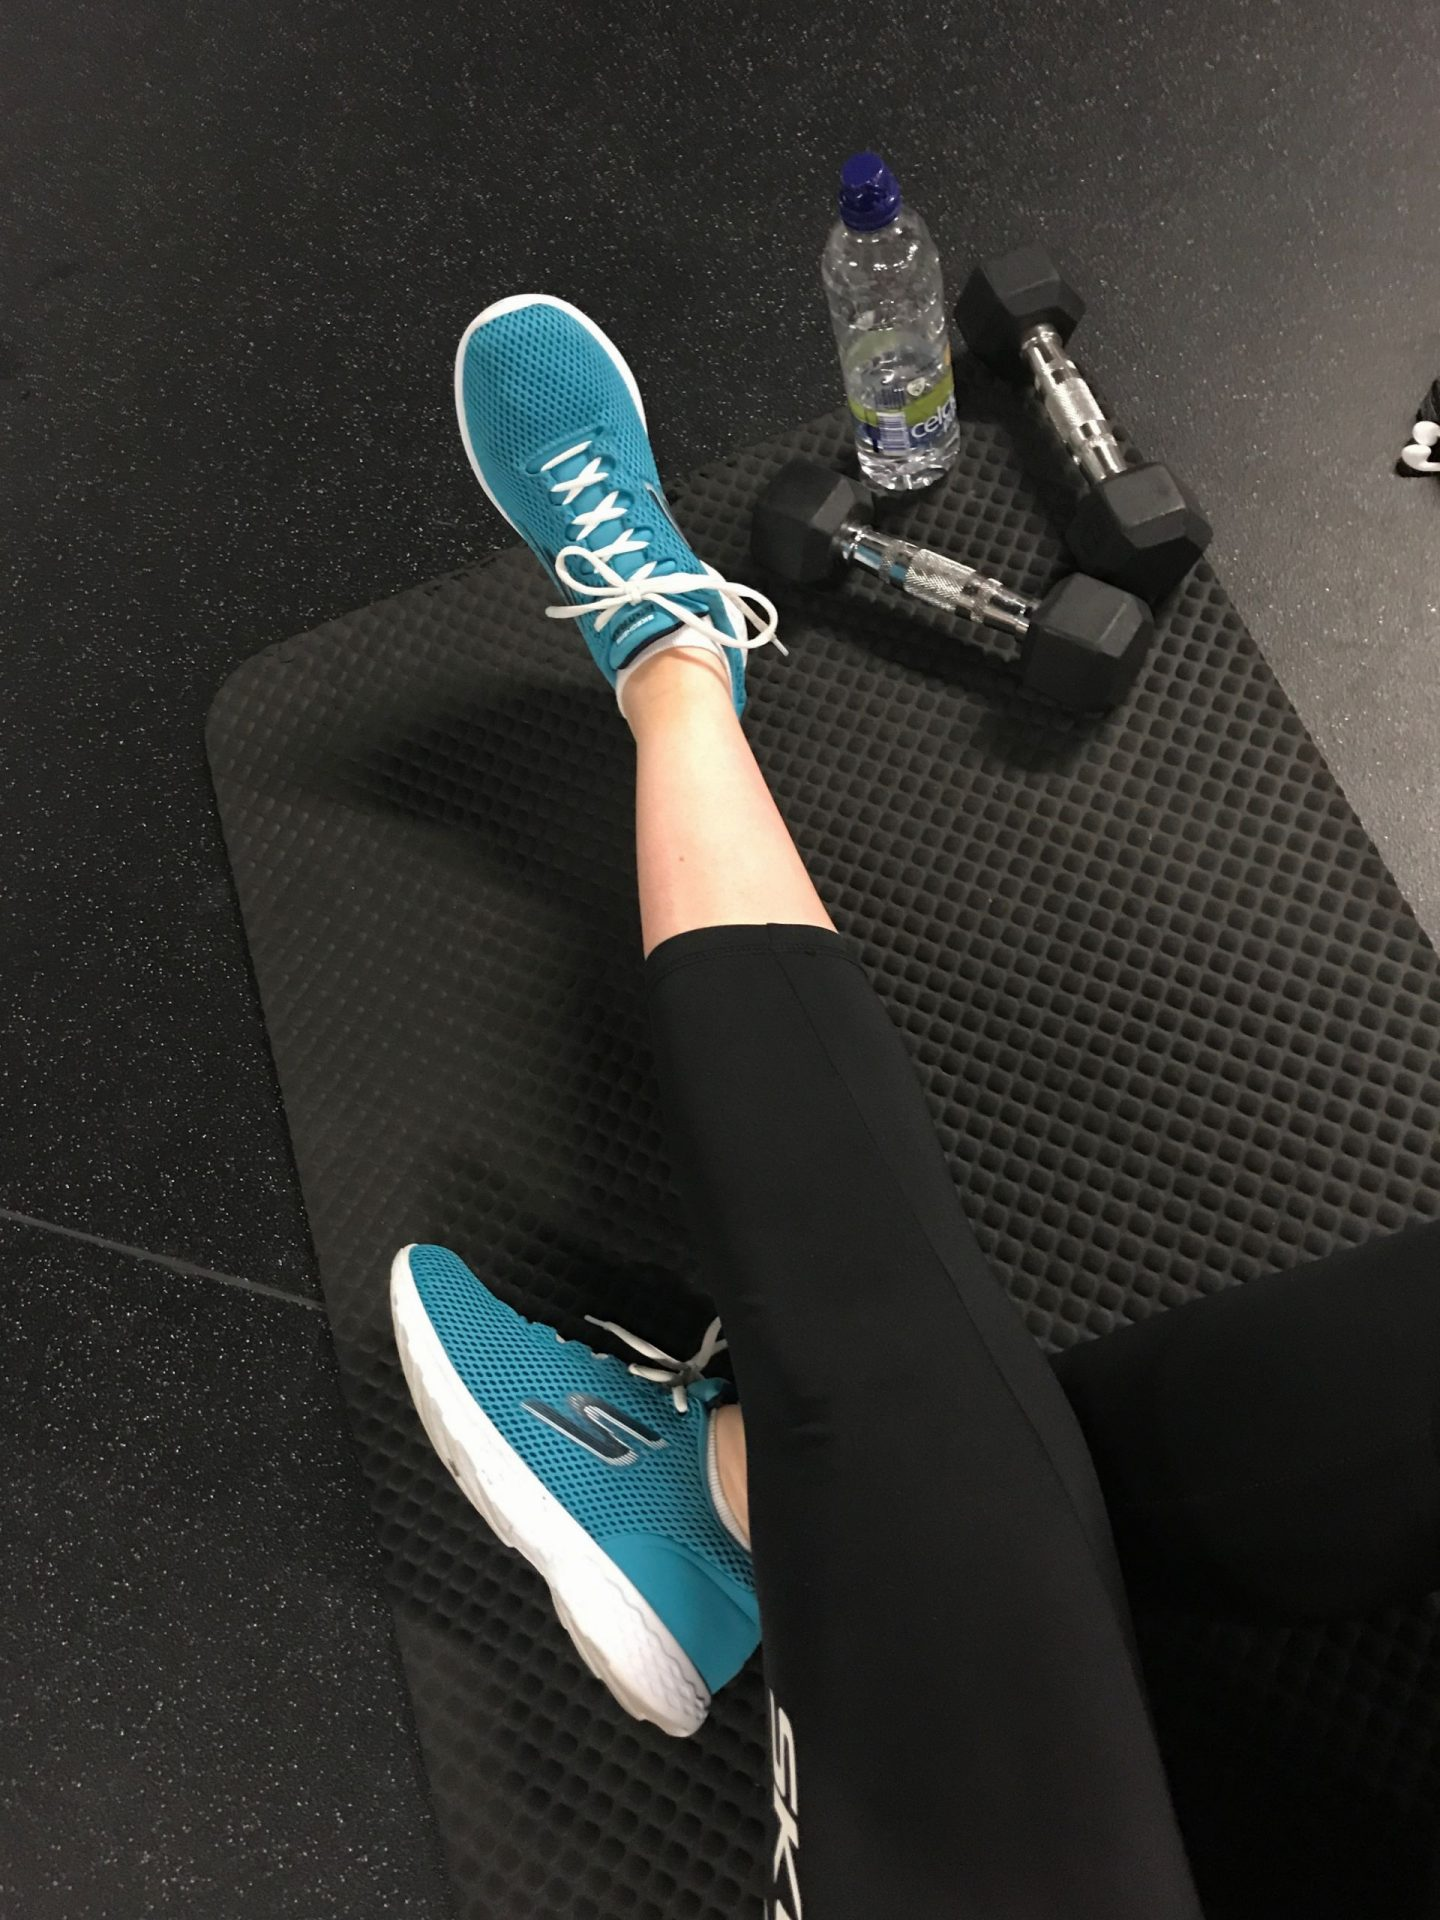 MY WORKOUT ROUTINE WITH SKECHERS